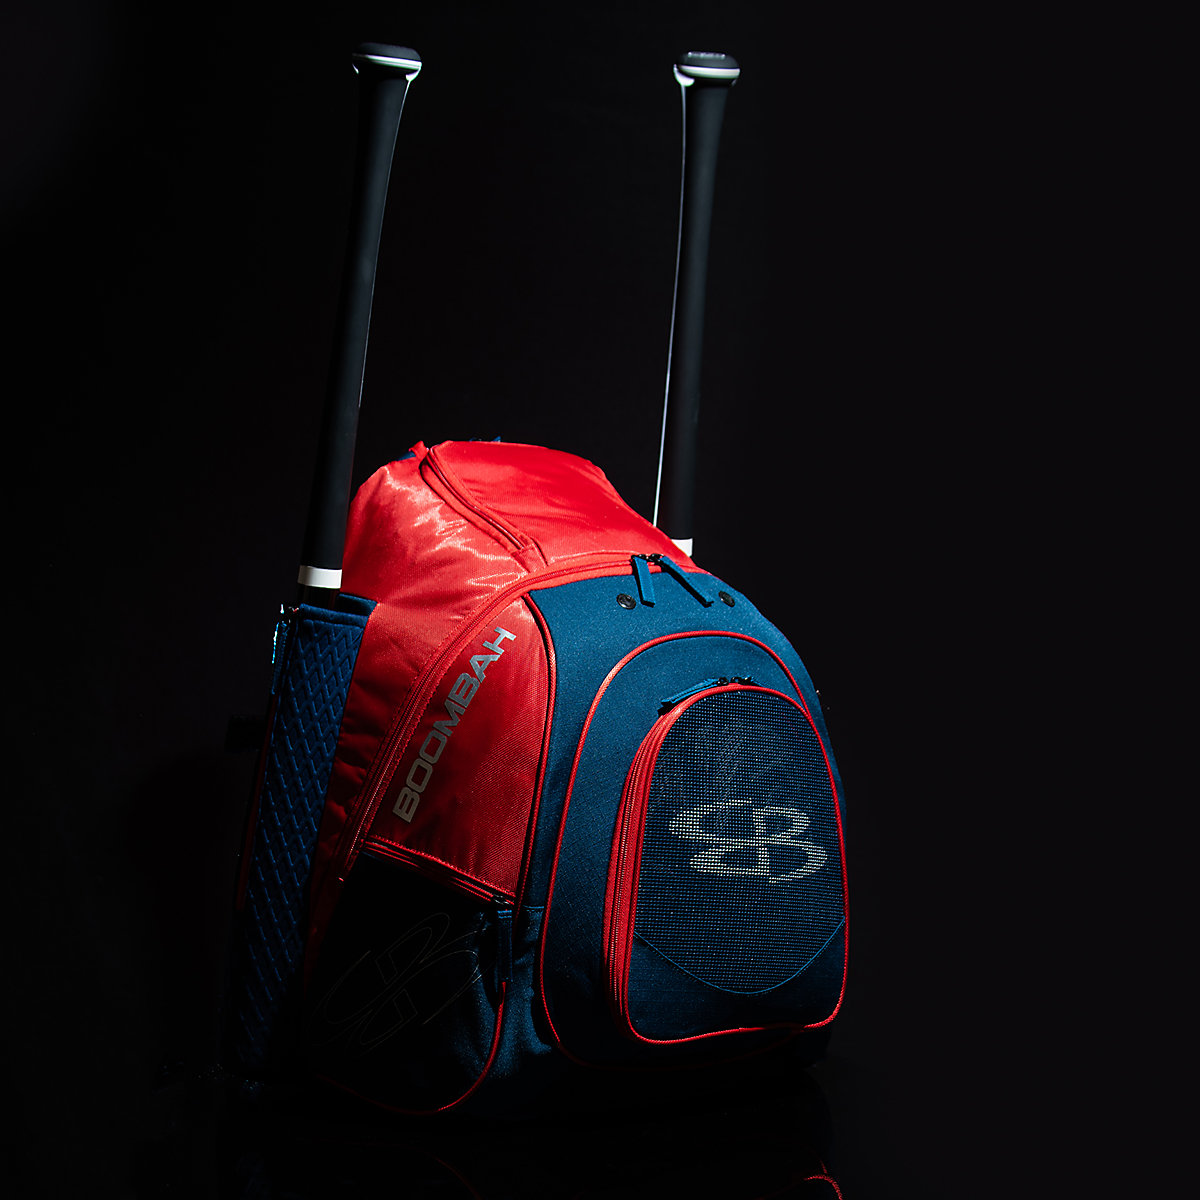 A blue and red bat bag with two baseball bats sticking out